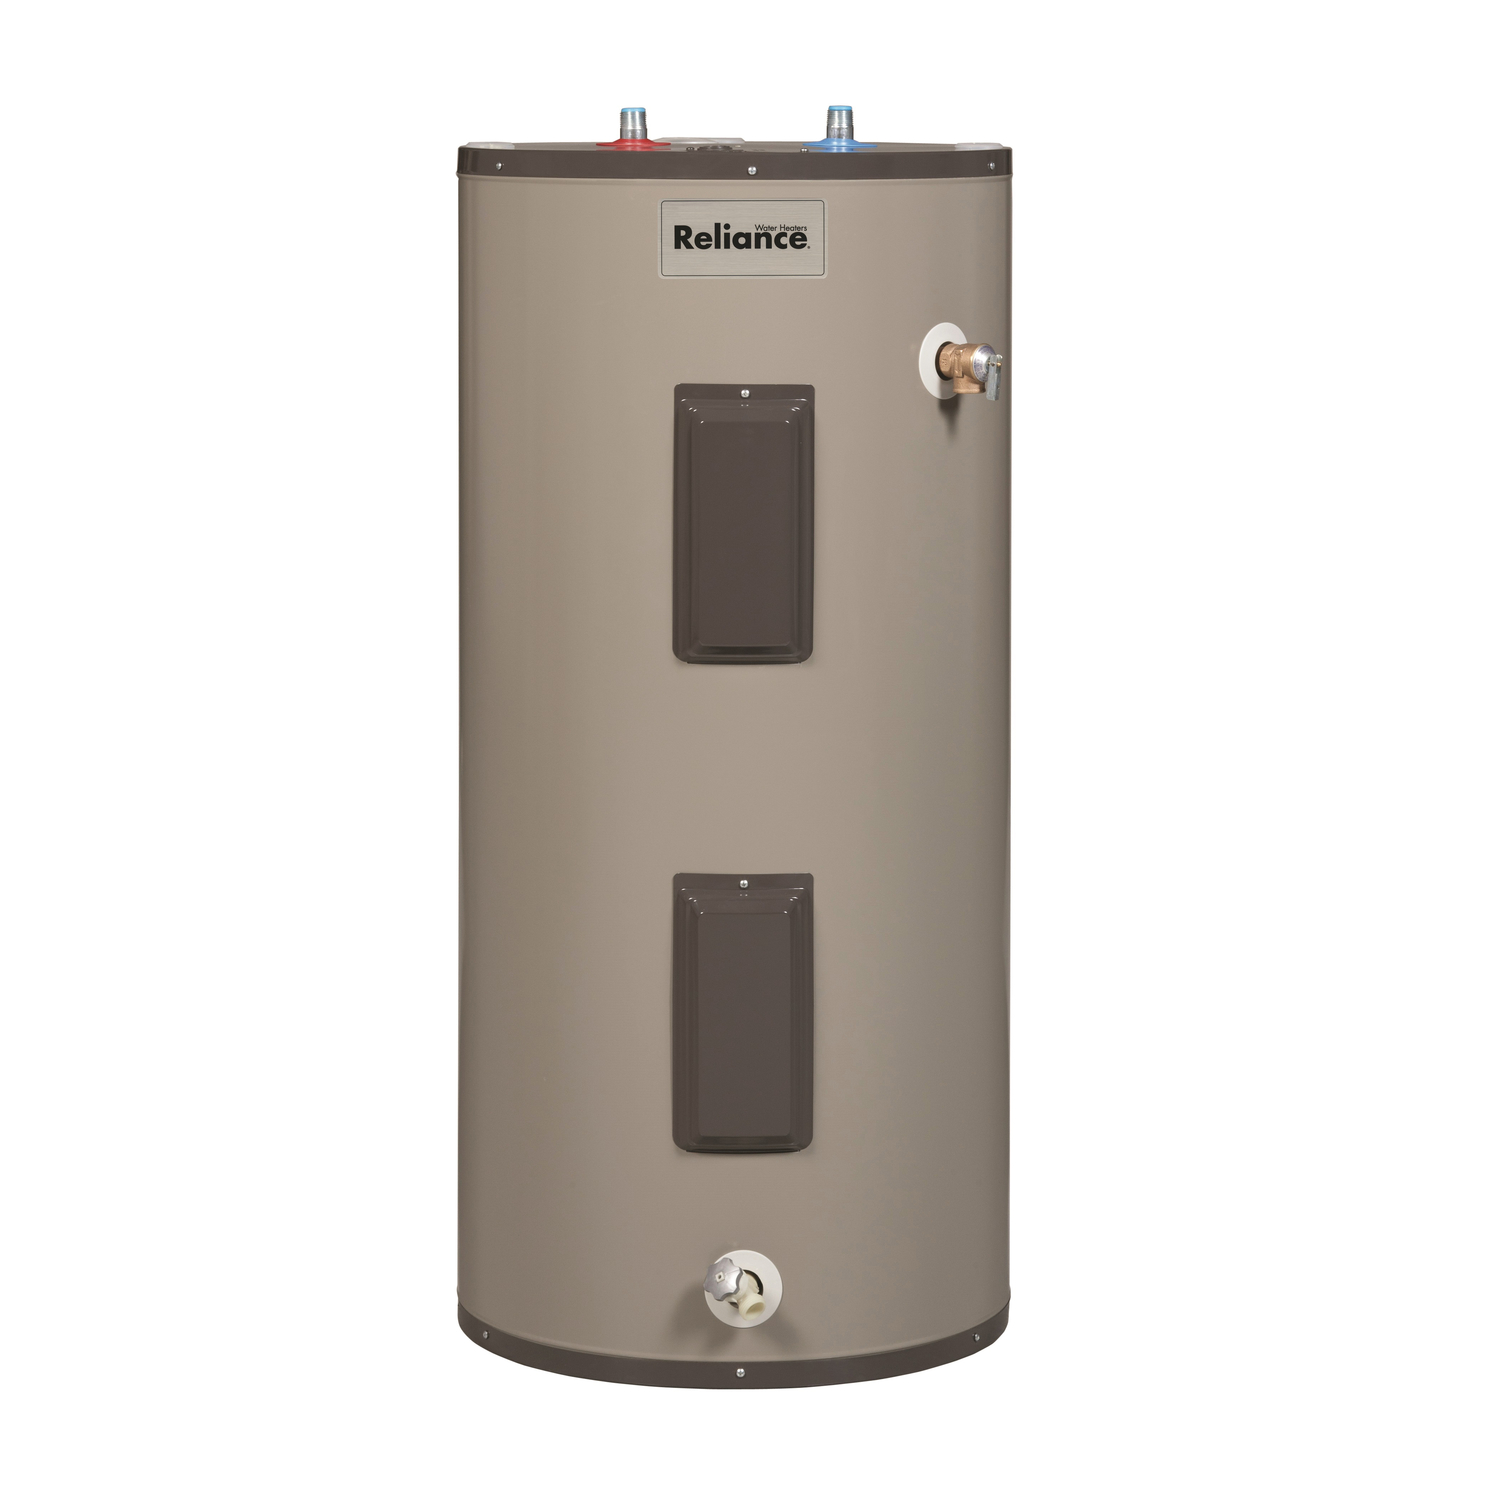 Reliance  Electric  Water Heater  50 in. H x 23 in. W x 23 in. L 50 gal.